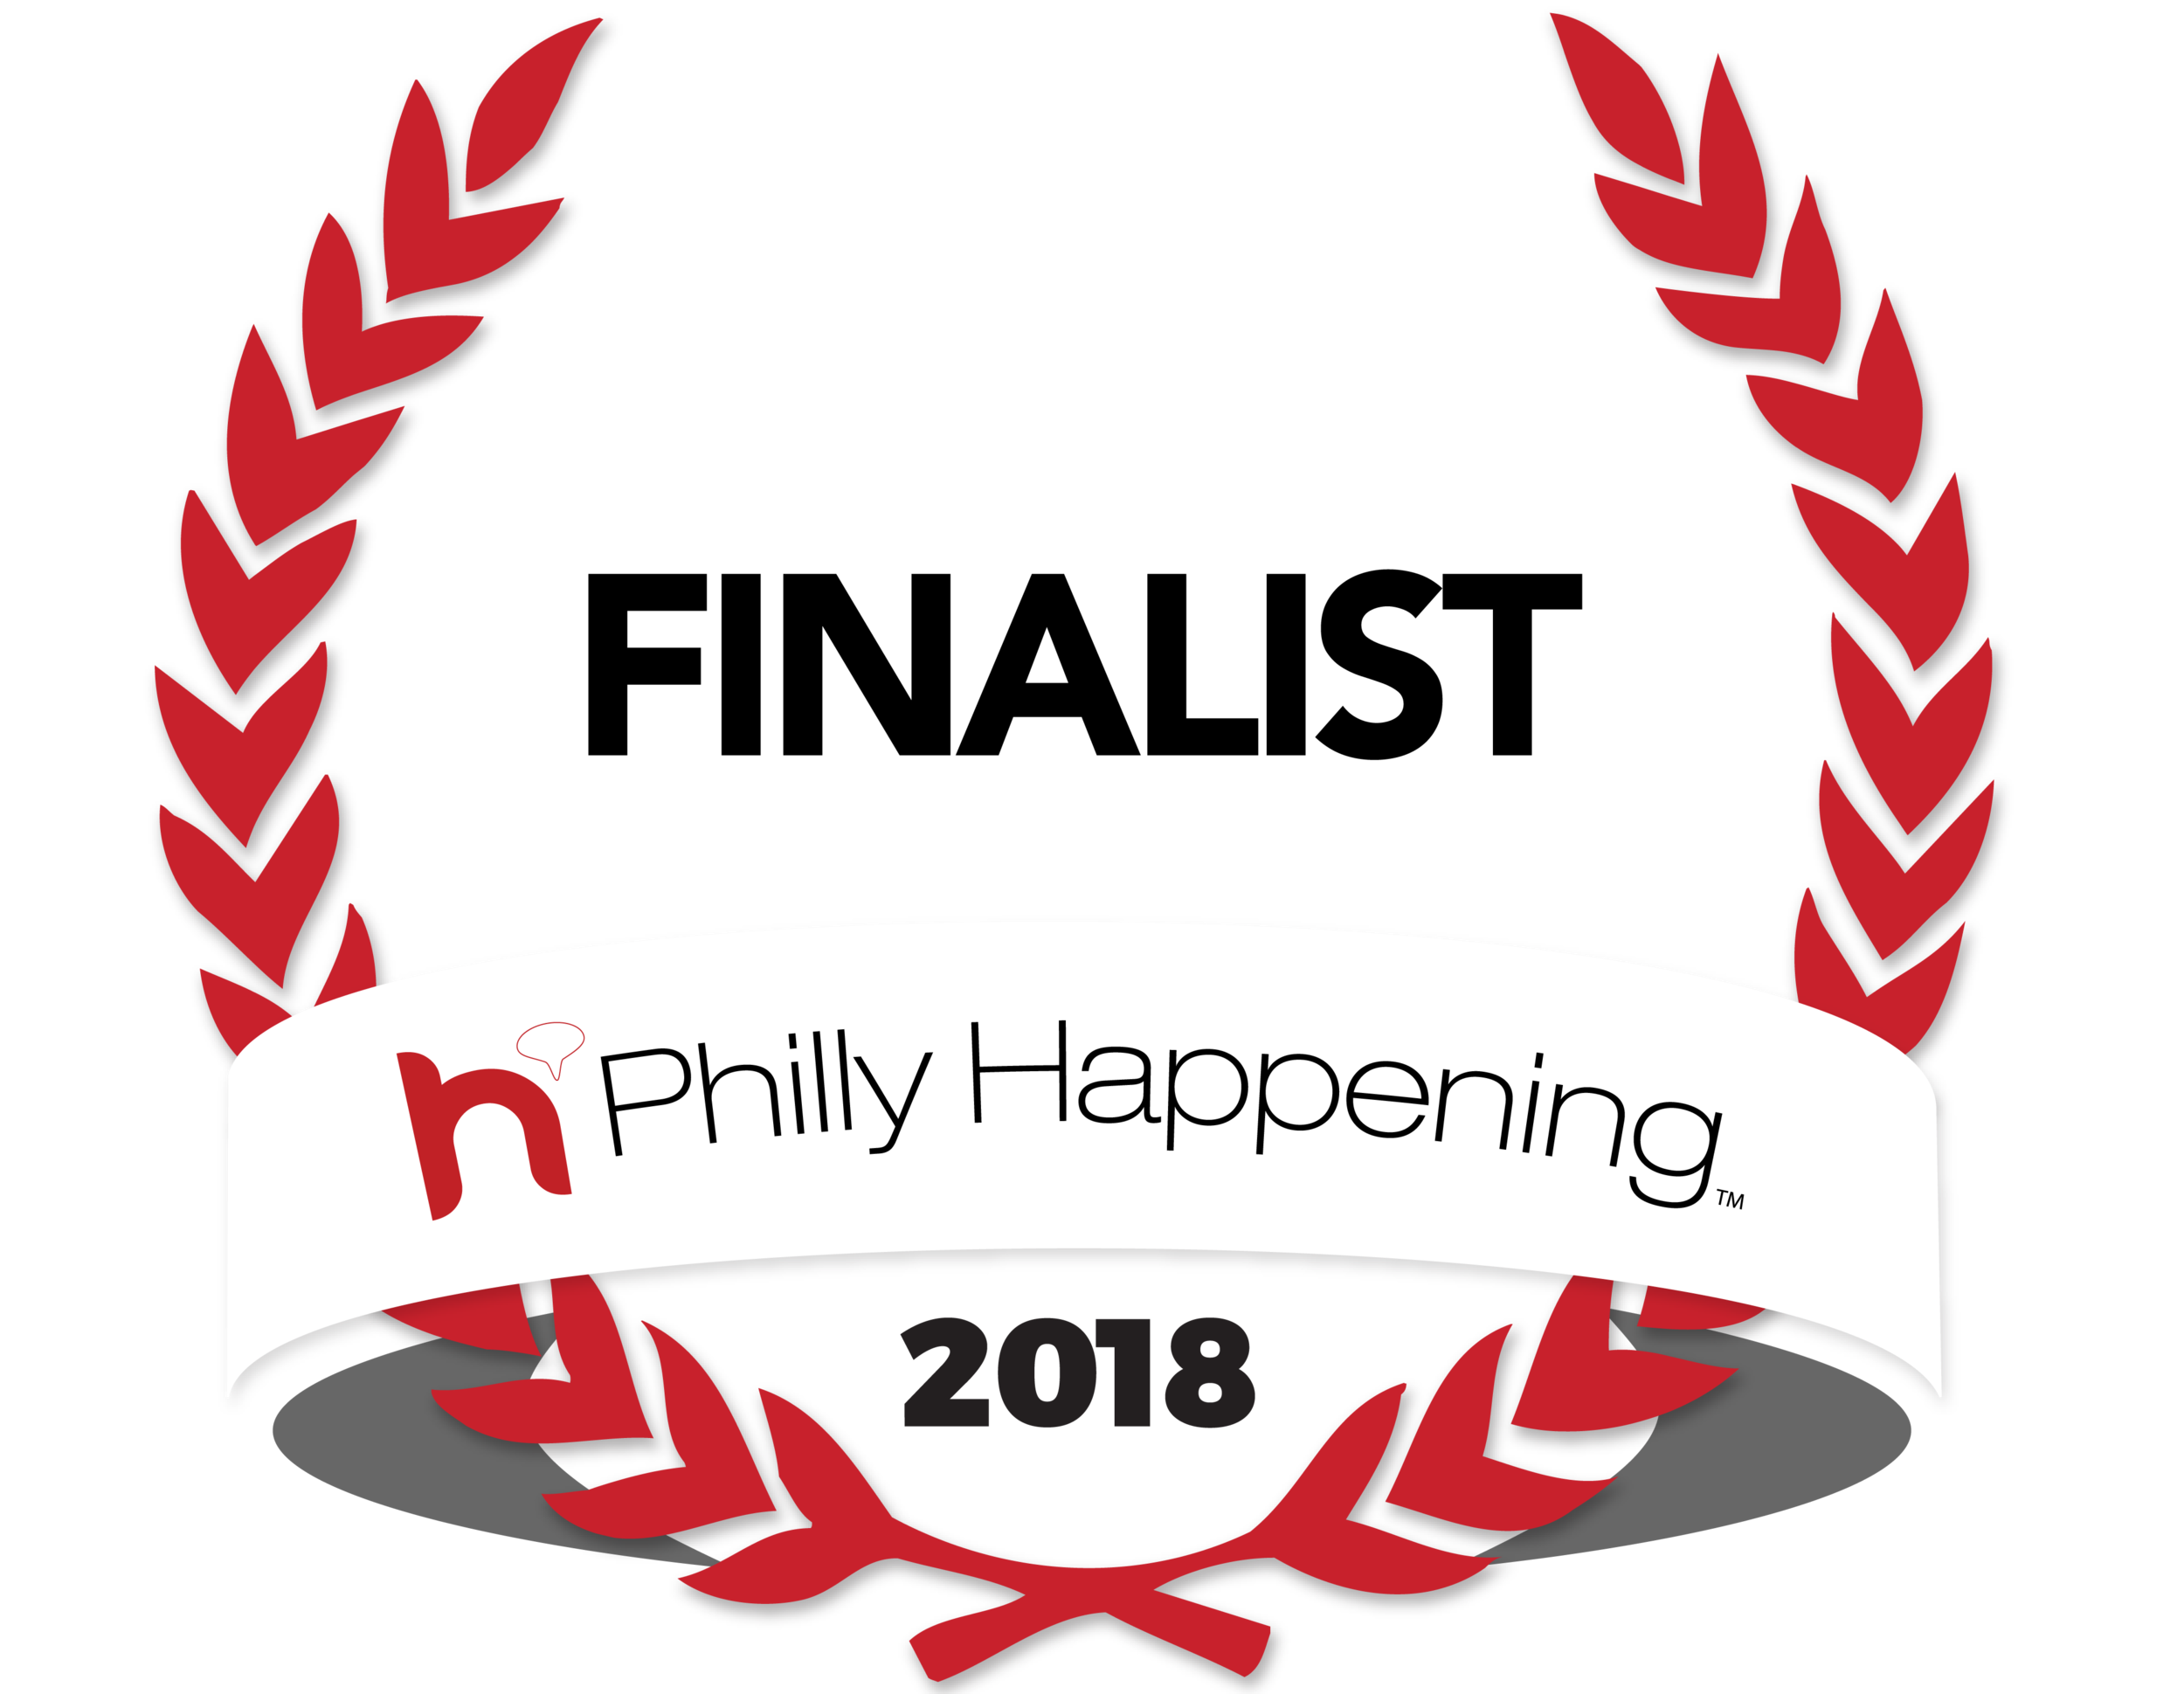 Philly-Happening-HL-Badge-2018--FINALIST.png